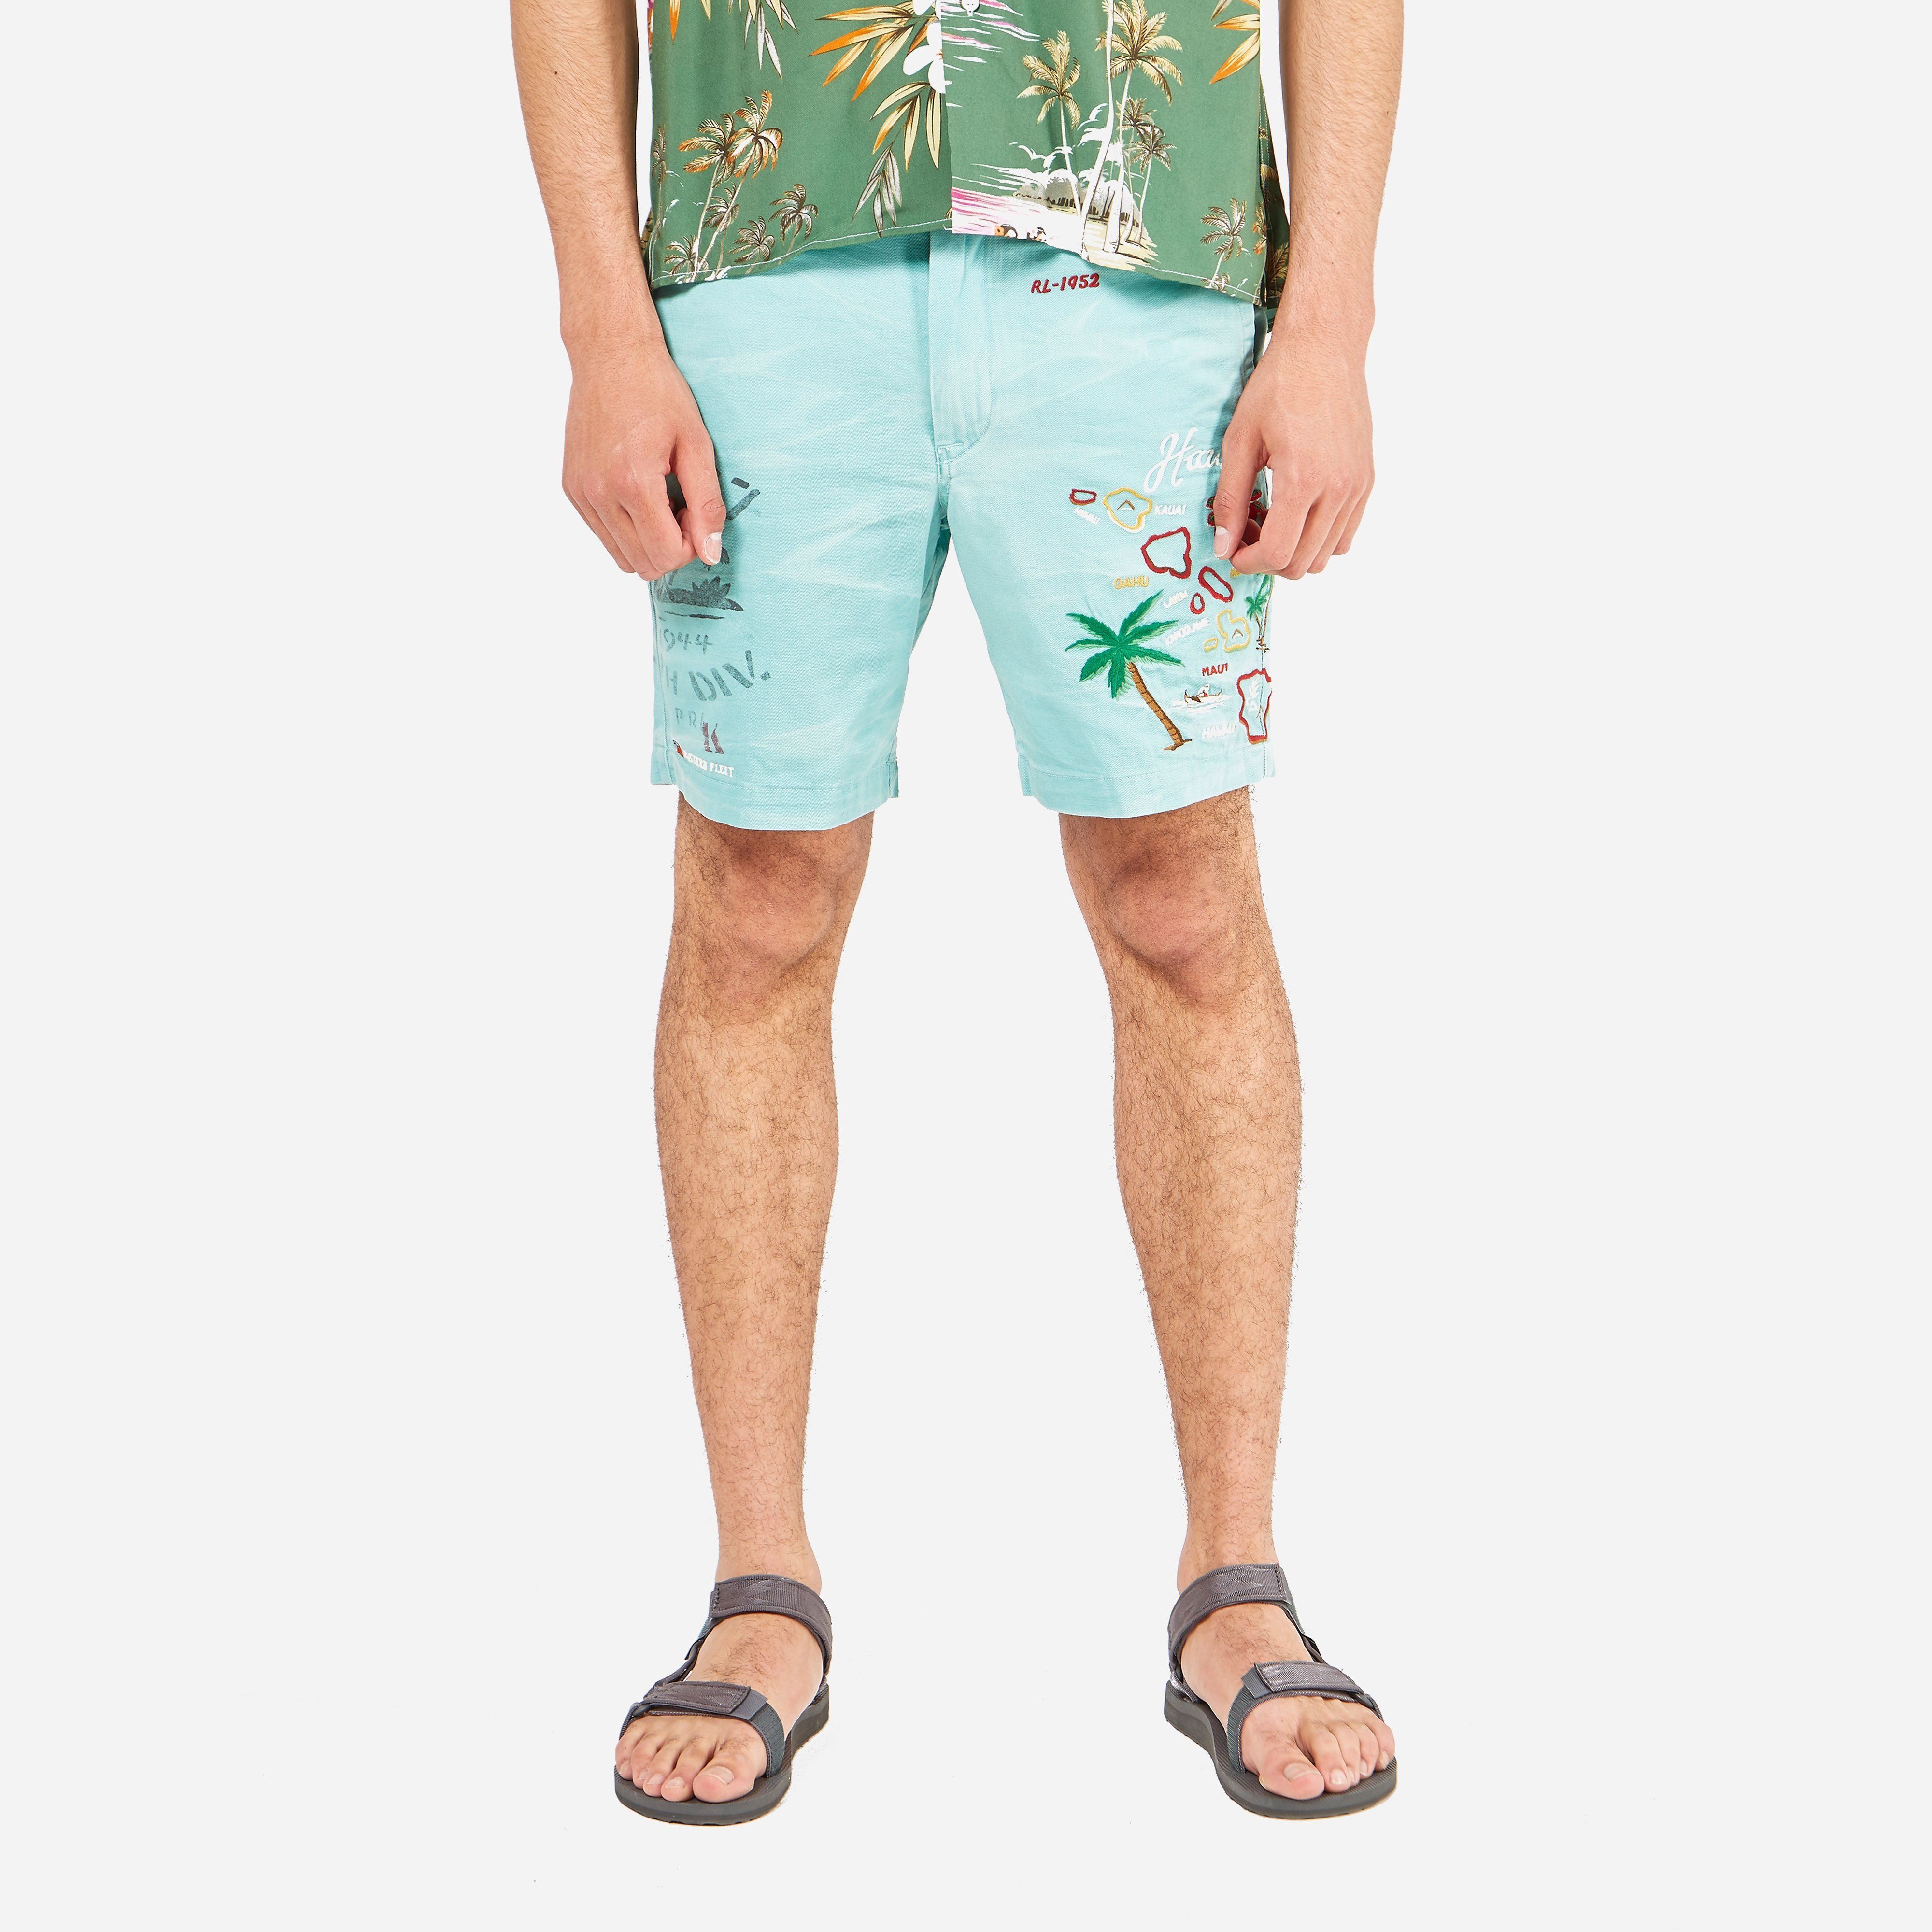 Polo Ralph Lauren Flat Shorts